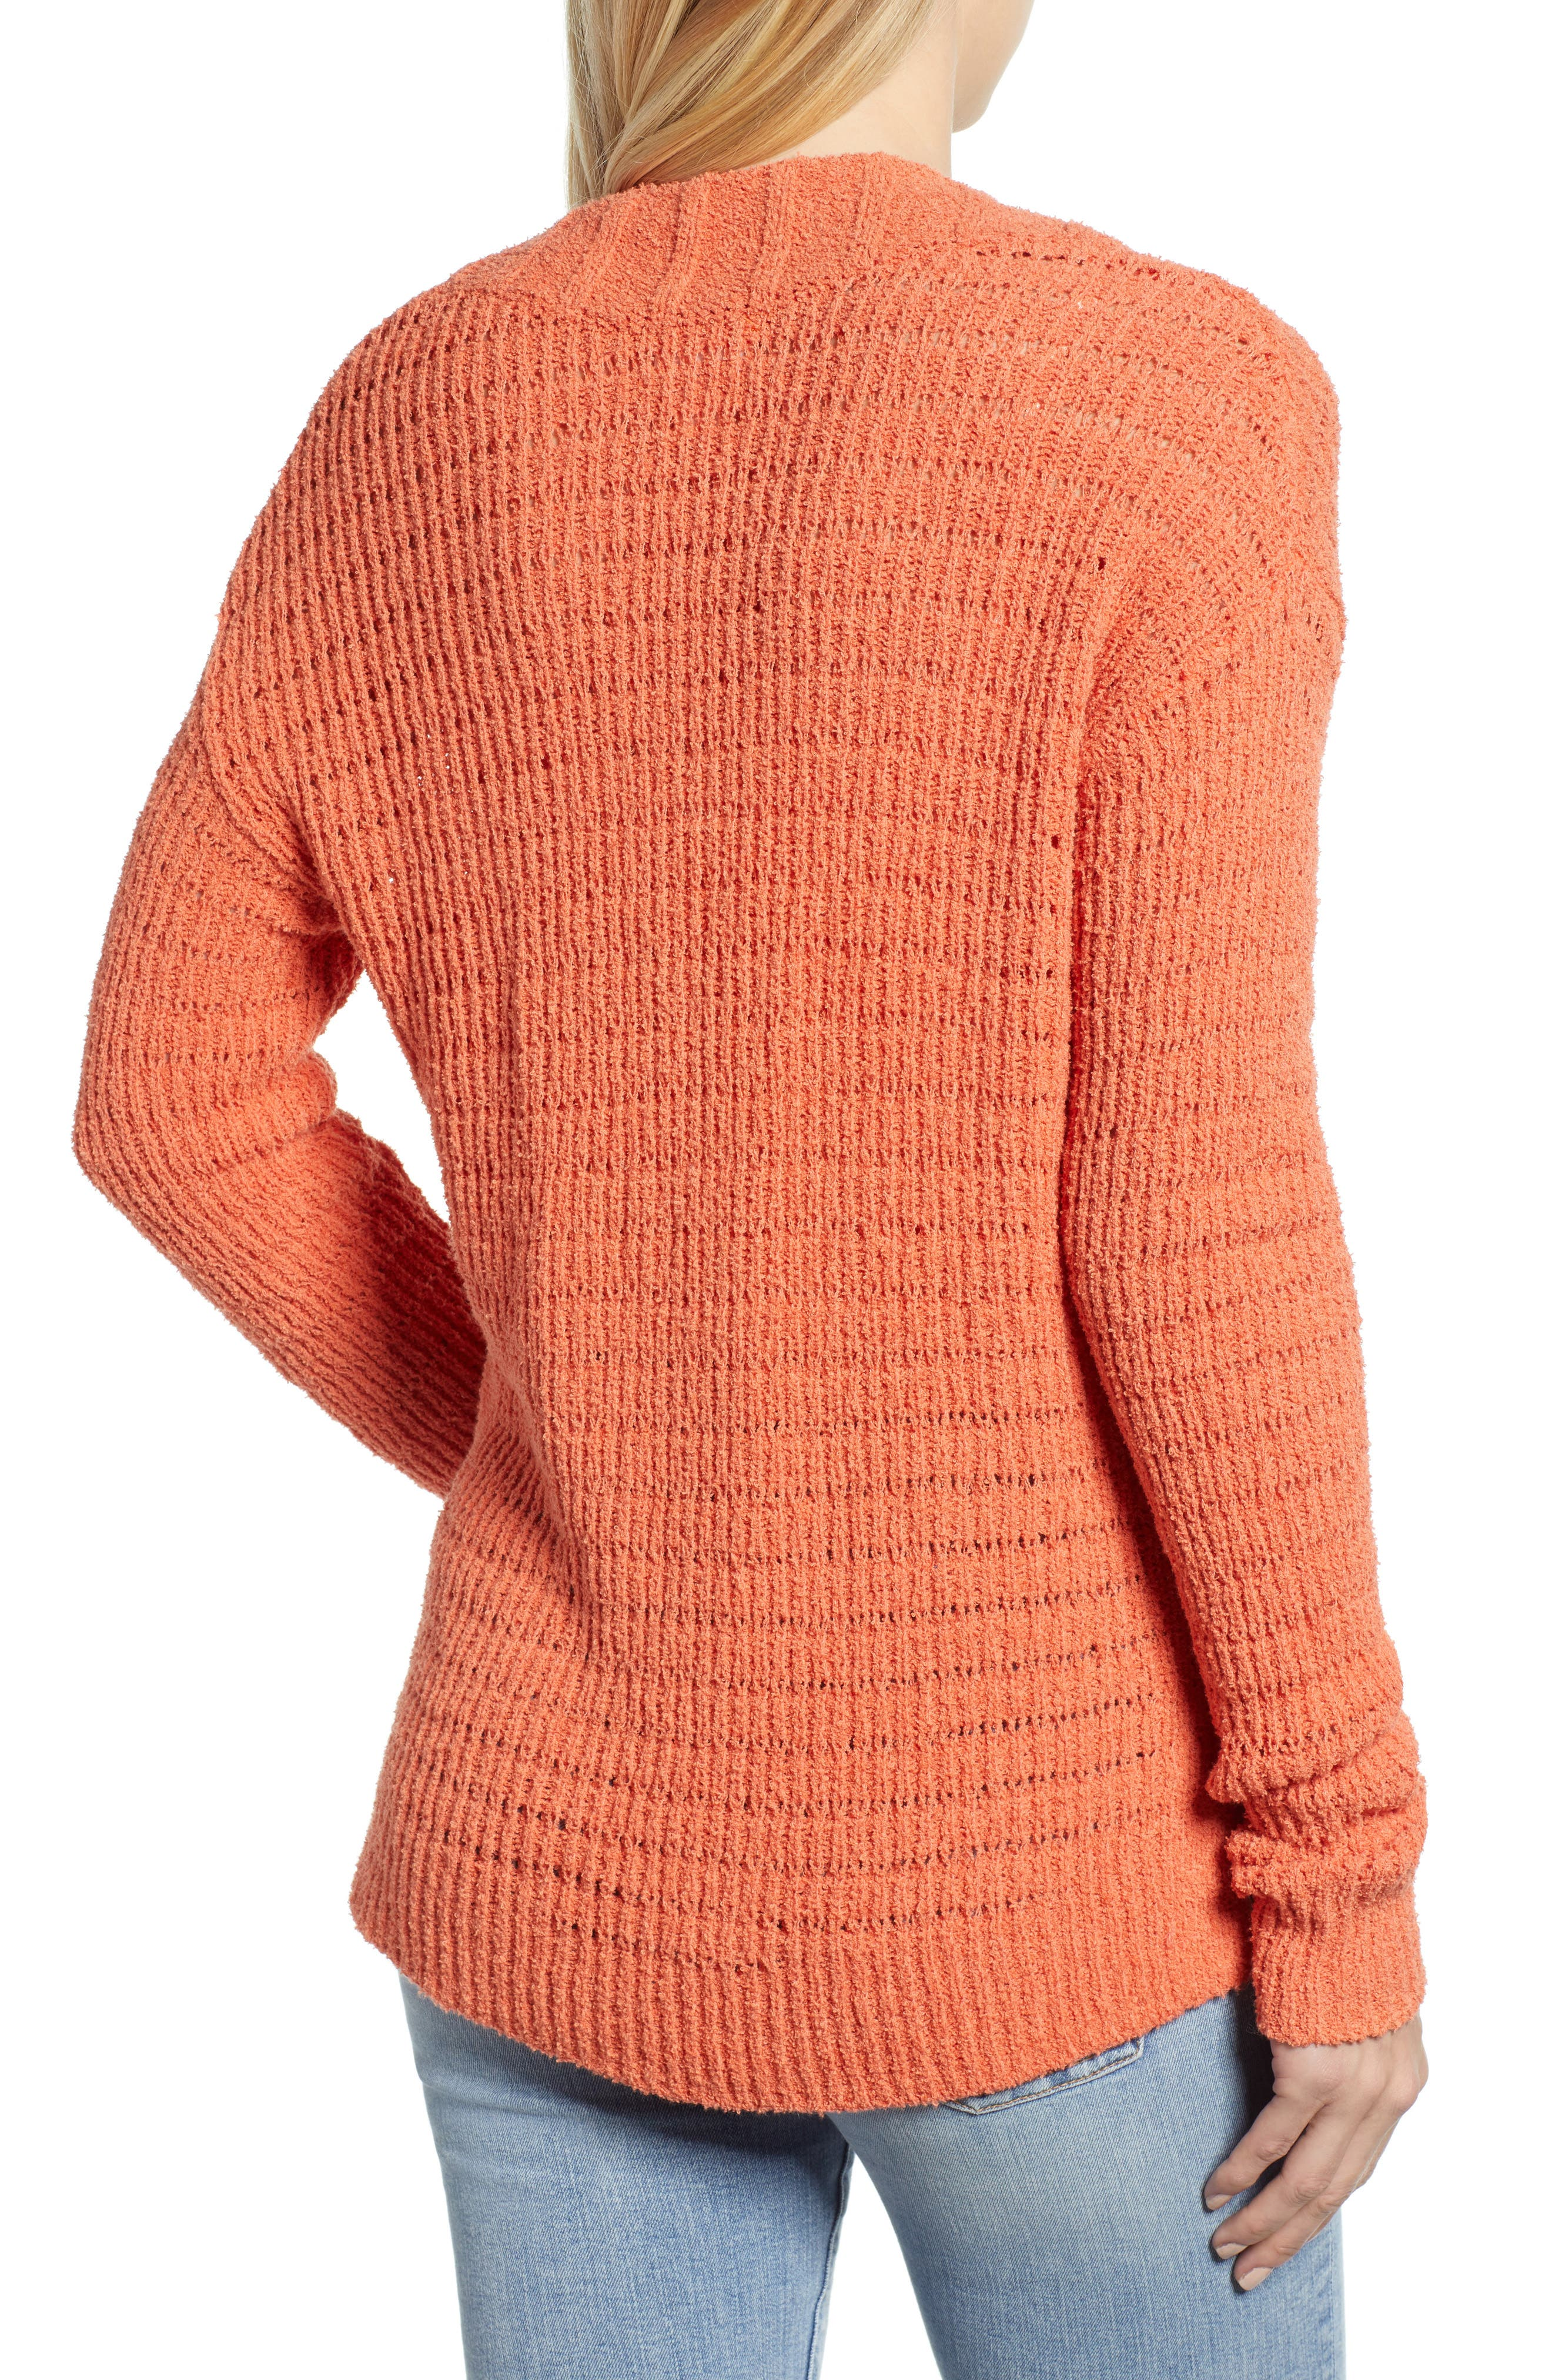 CASLON<SUP>®</SUP>, Tuck Stitch Sweater, Alternate thumbnail 2, color, 801